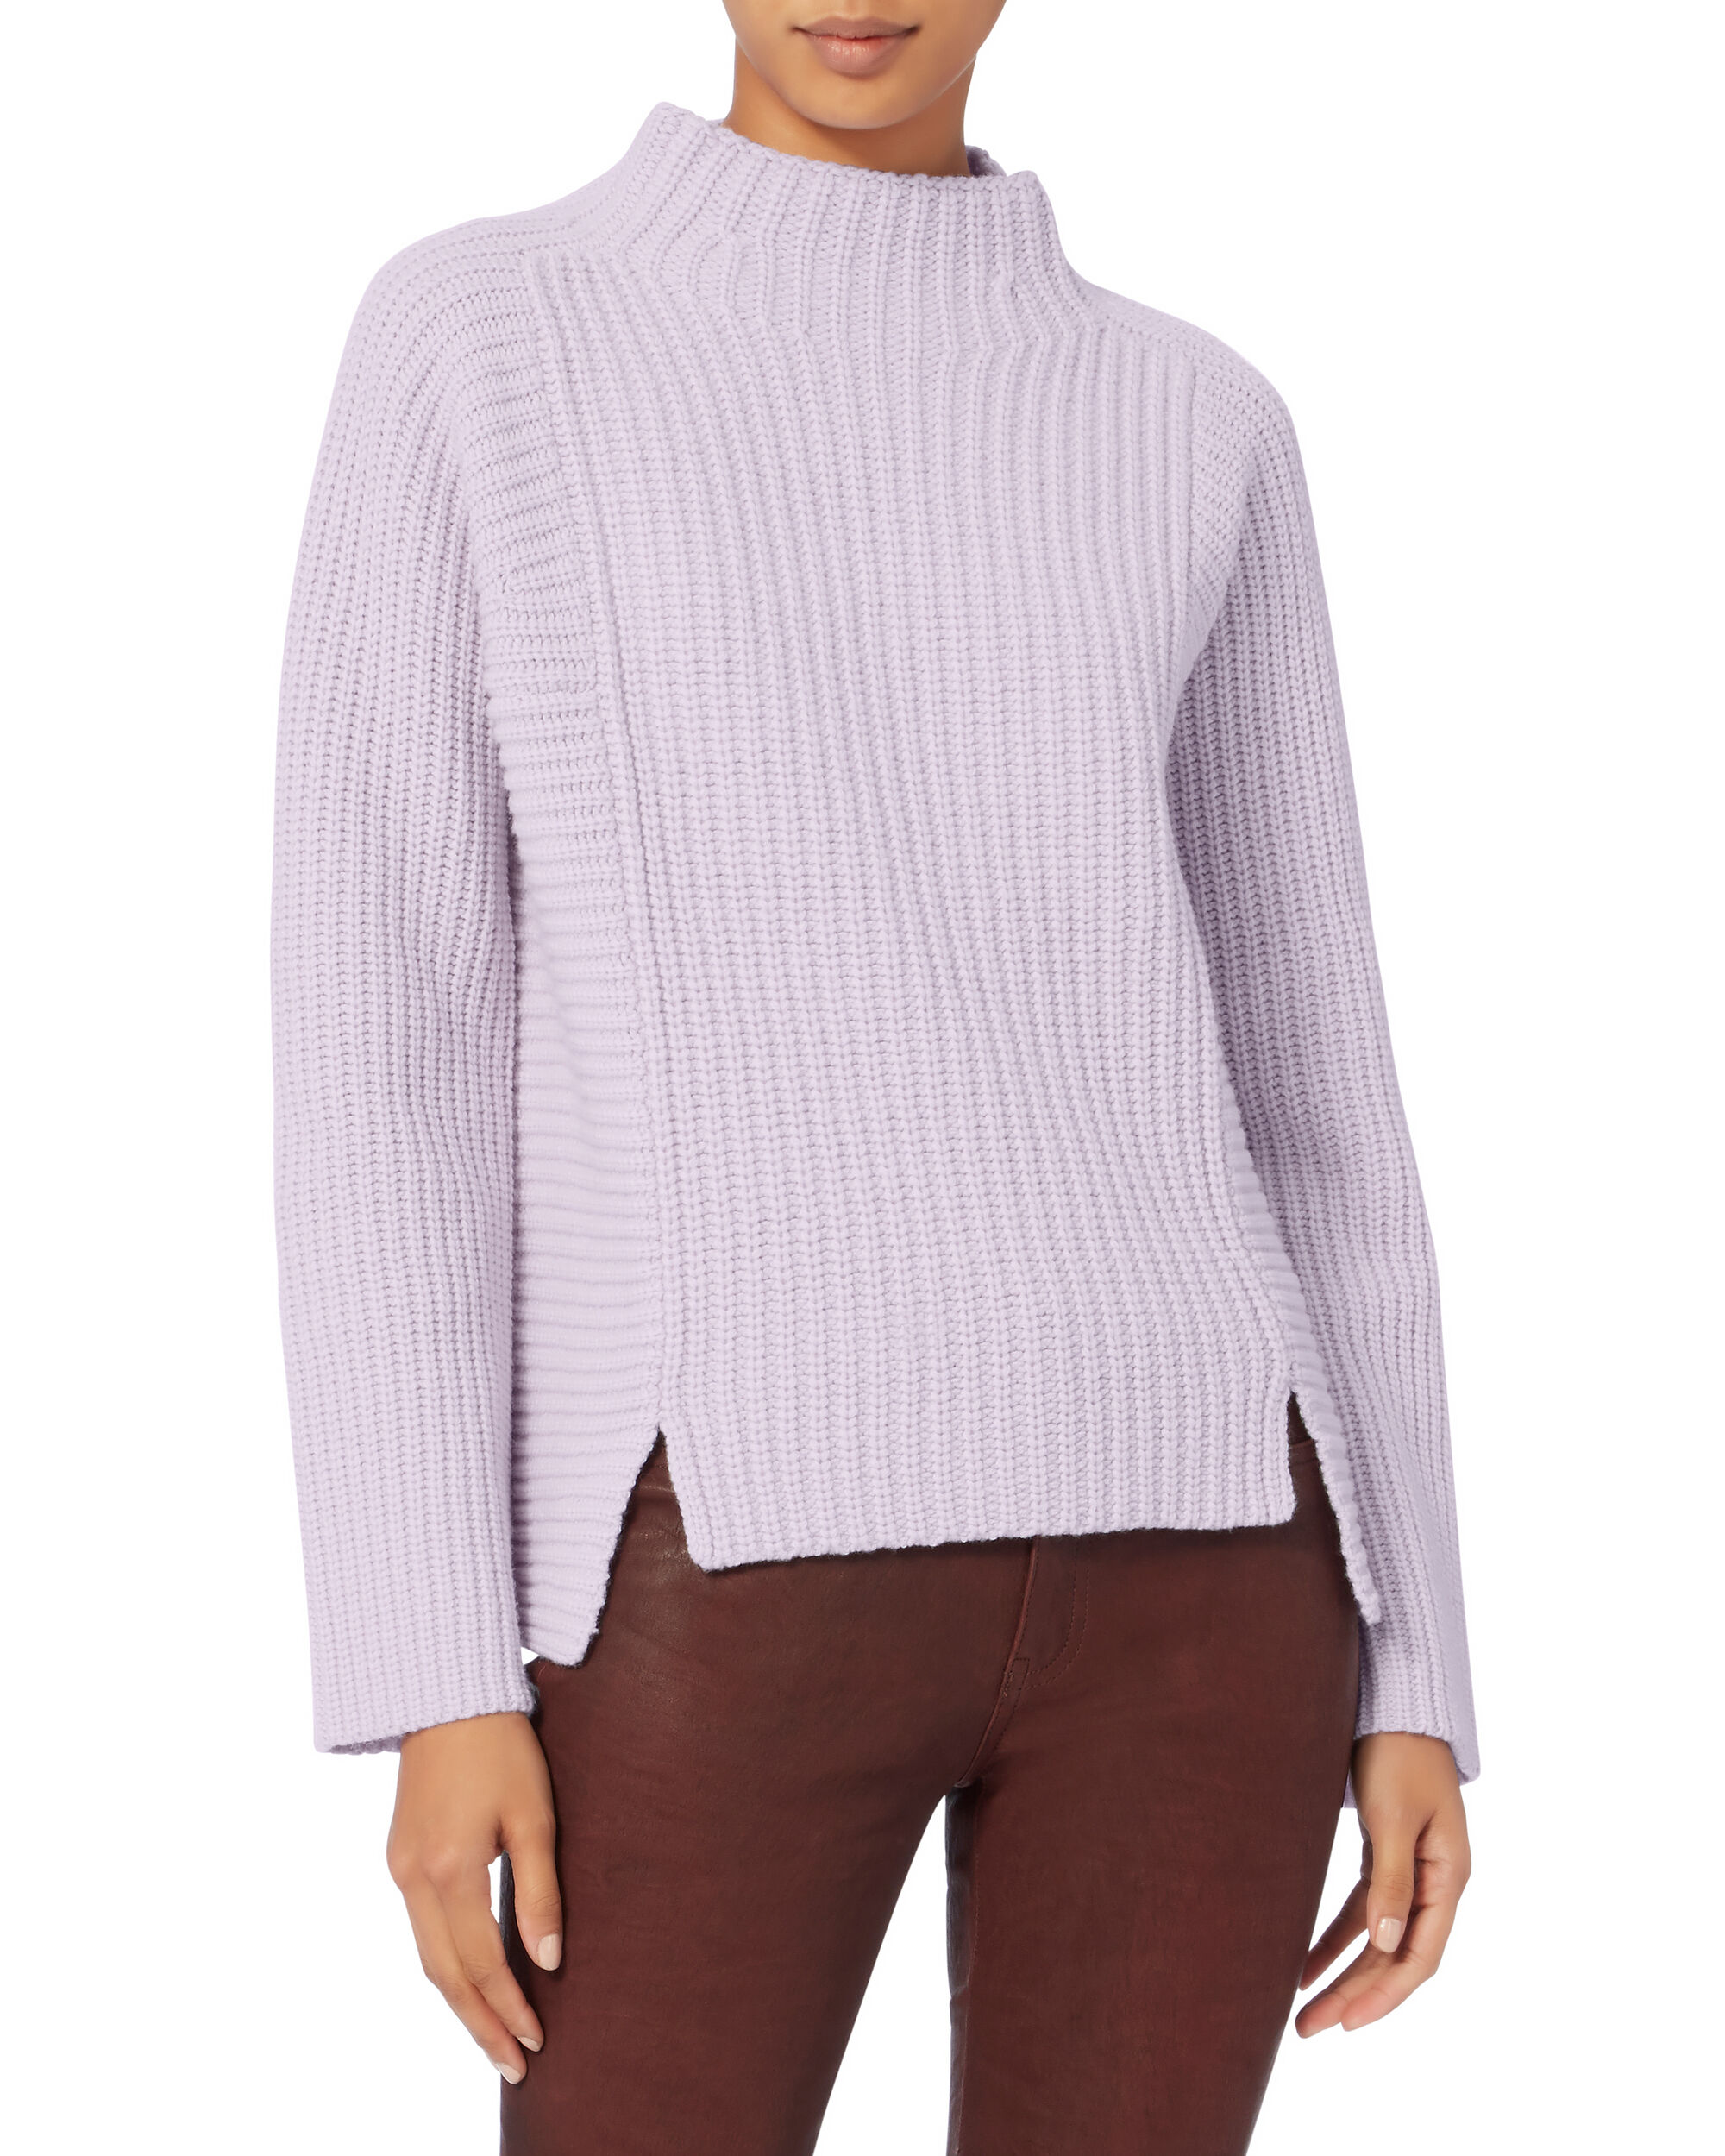 Keira Funnel Neck Lavender Sweater, PURPLE, hi-res